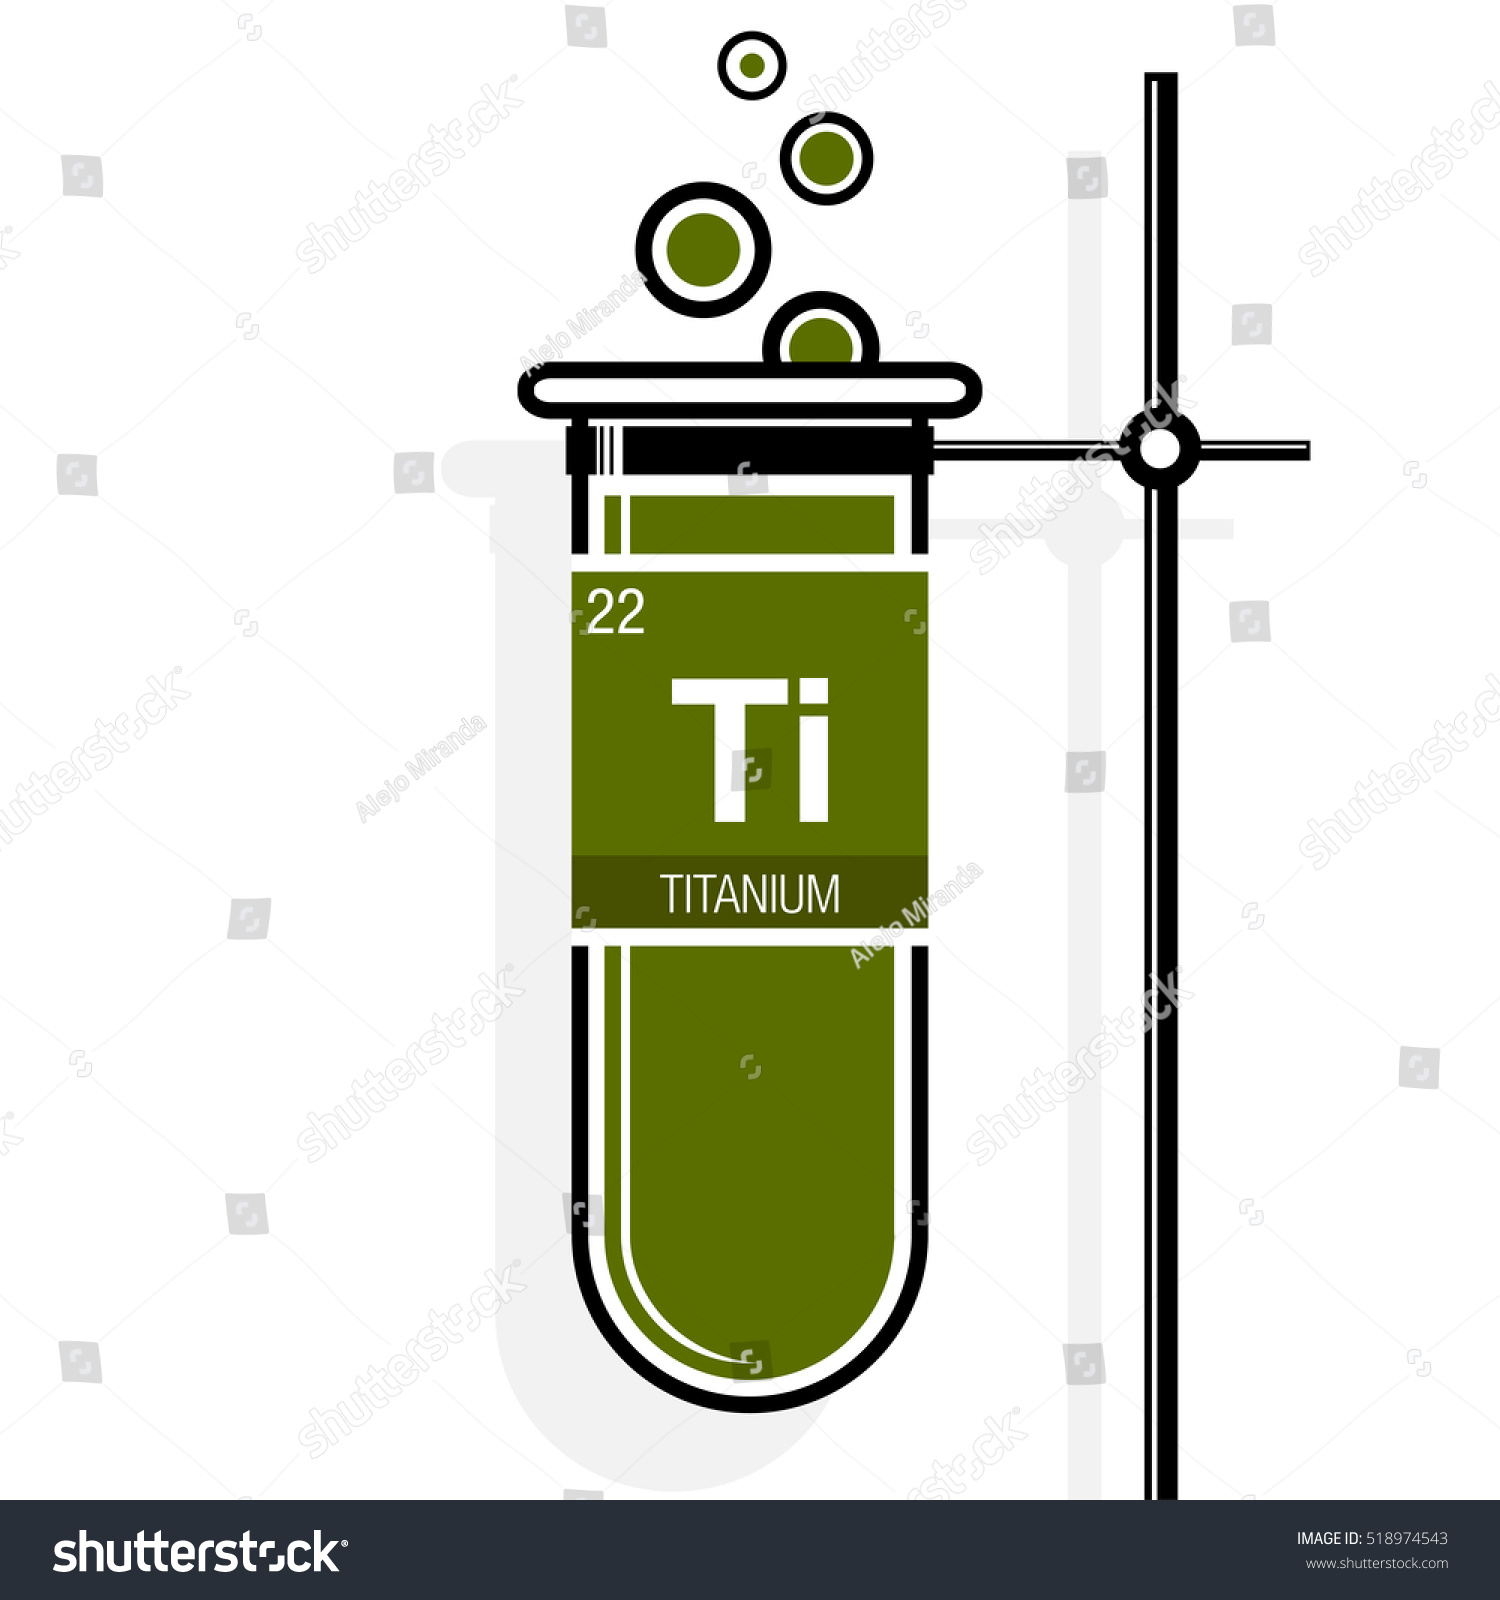 Titanium symbol on label green test stock vector 518974543 titanium symbol on label in a green test tube with holder element number 22 of urtaz Image collections